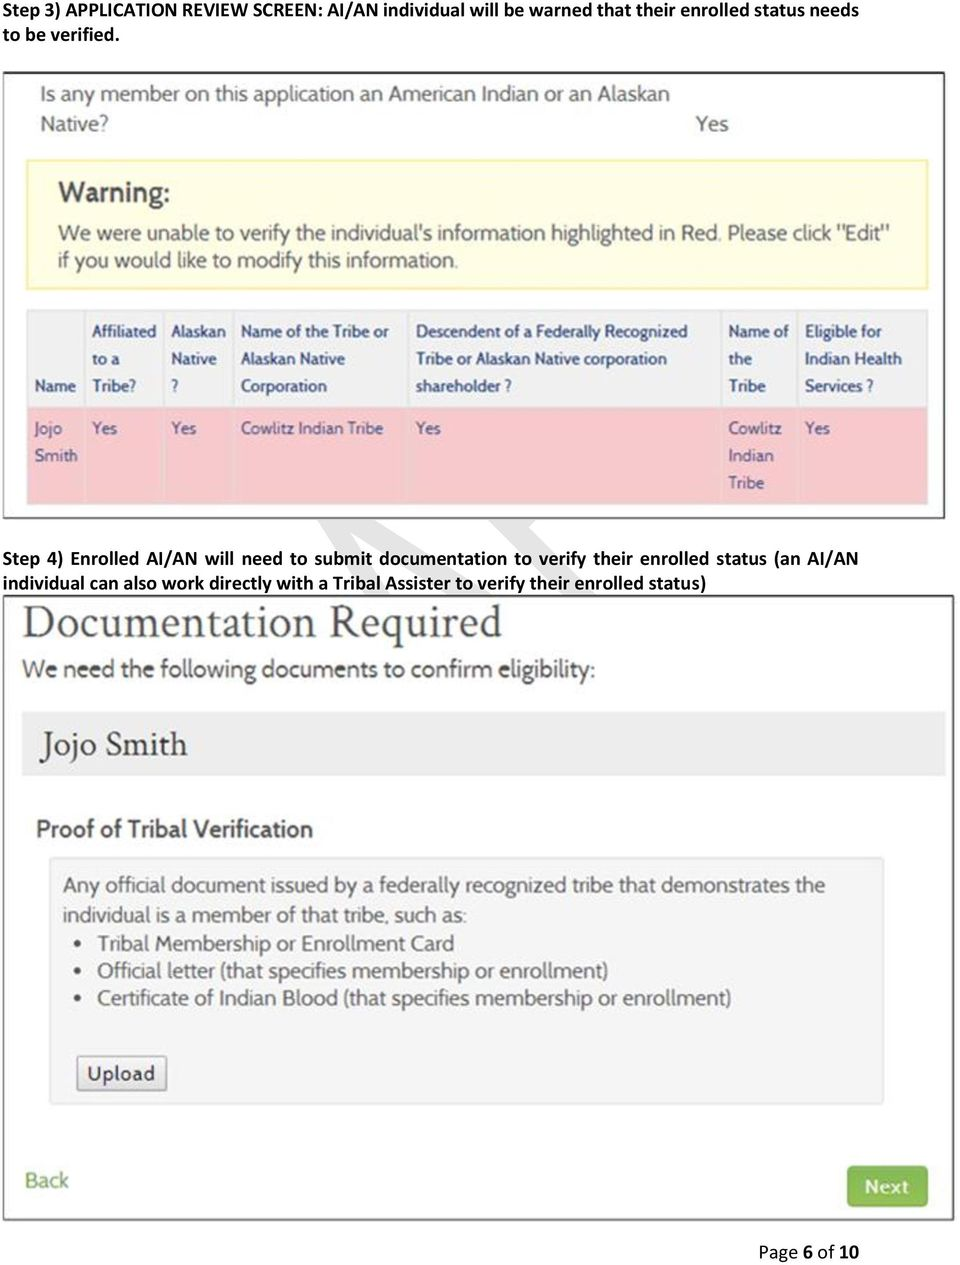 Step 4) Enrolled AI/AN will need to submit documentation to verify their